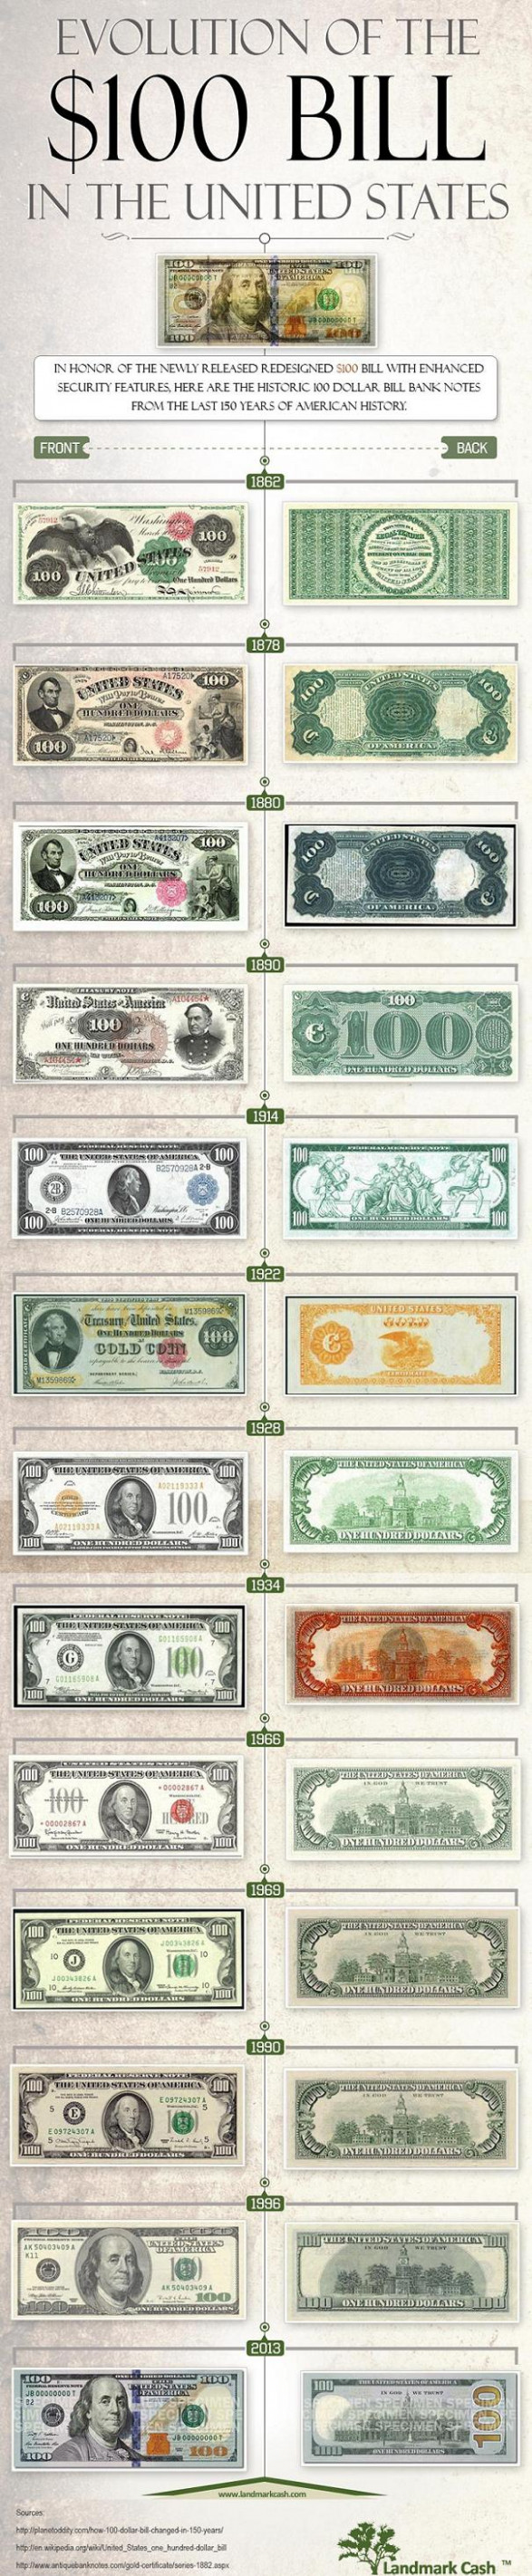 Evolution of the $100 Dollar Bill in the United States